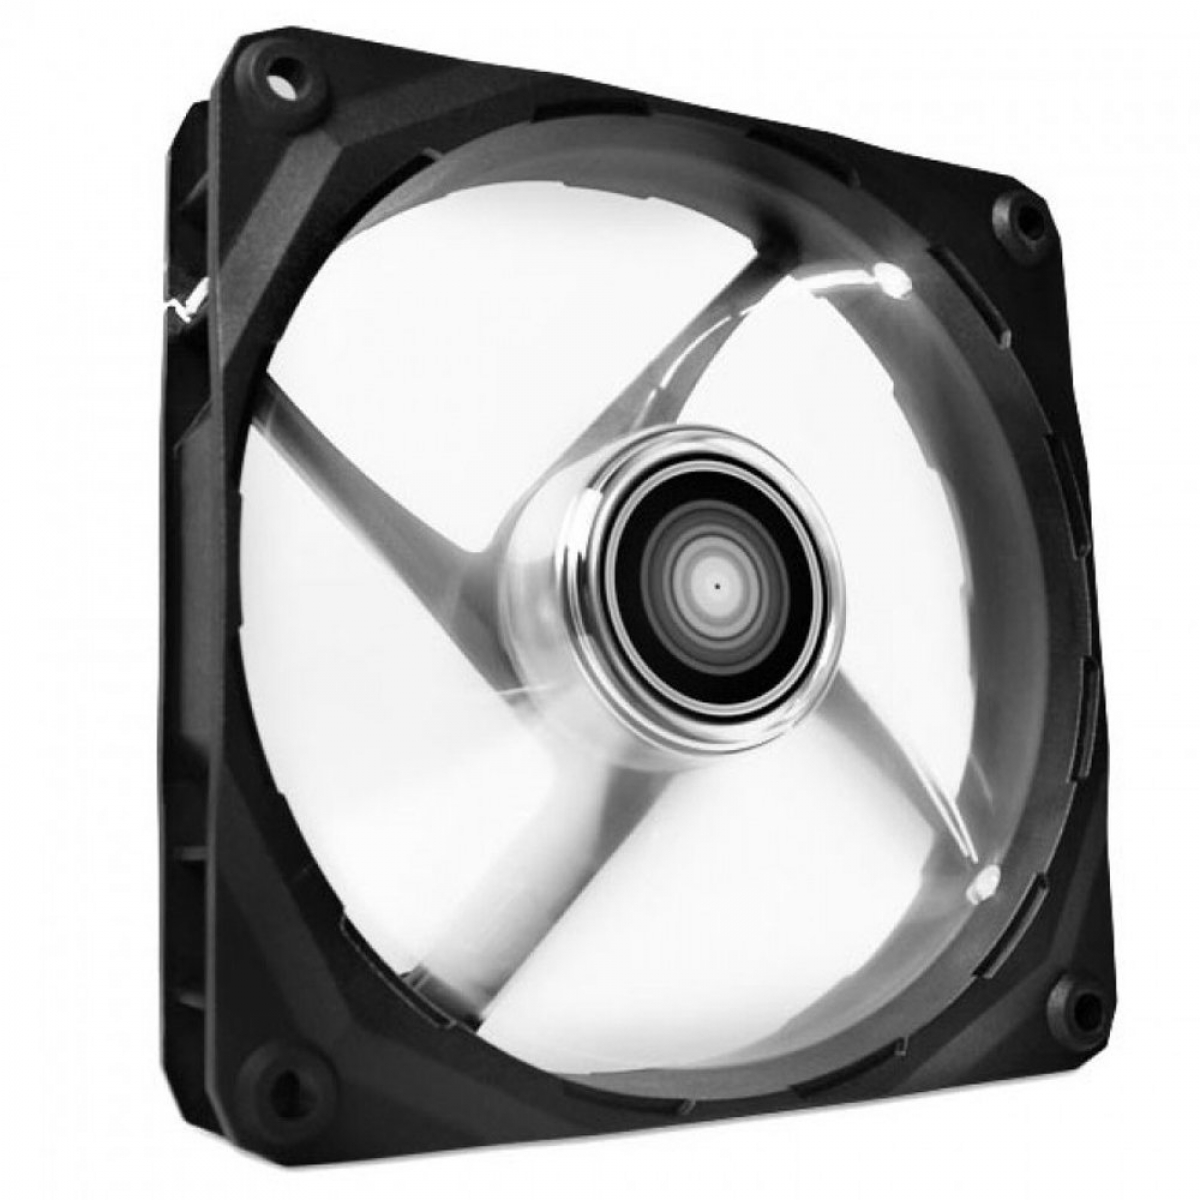 Cooler para Gabinete NZXT FZ120 RF-FZ120-W1 Led Branco 120mm